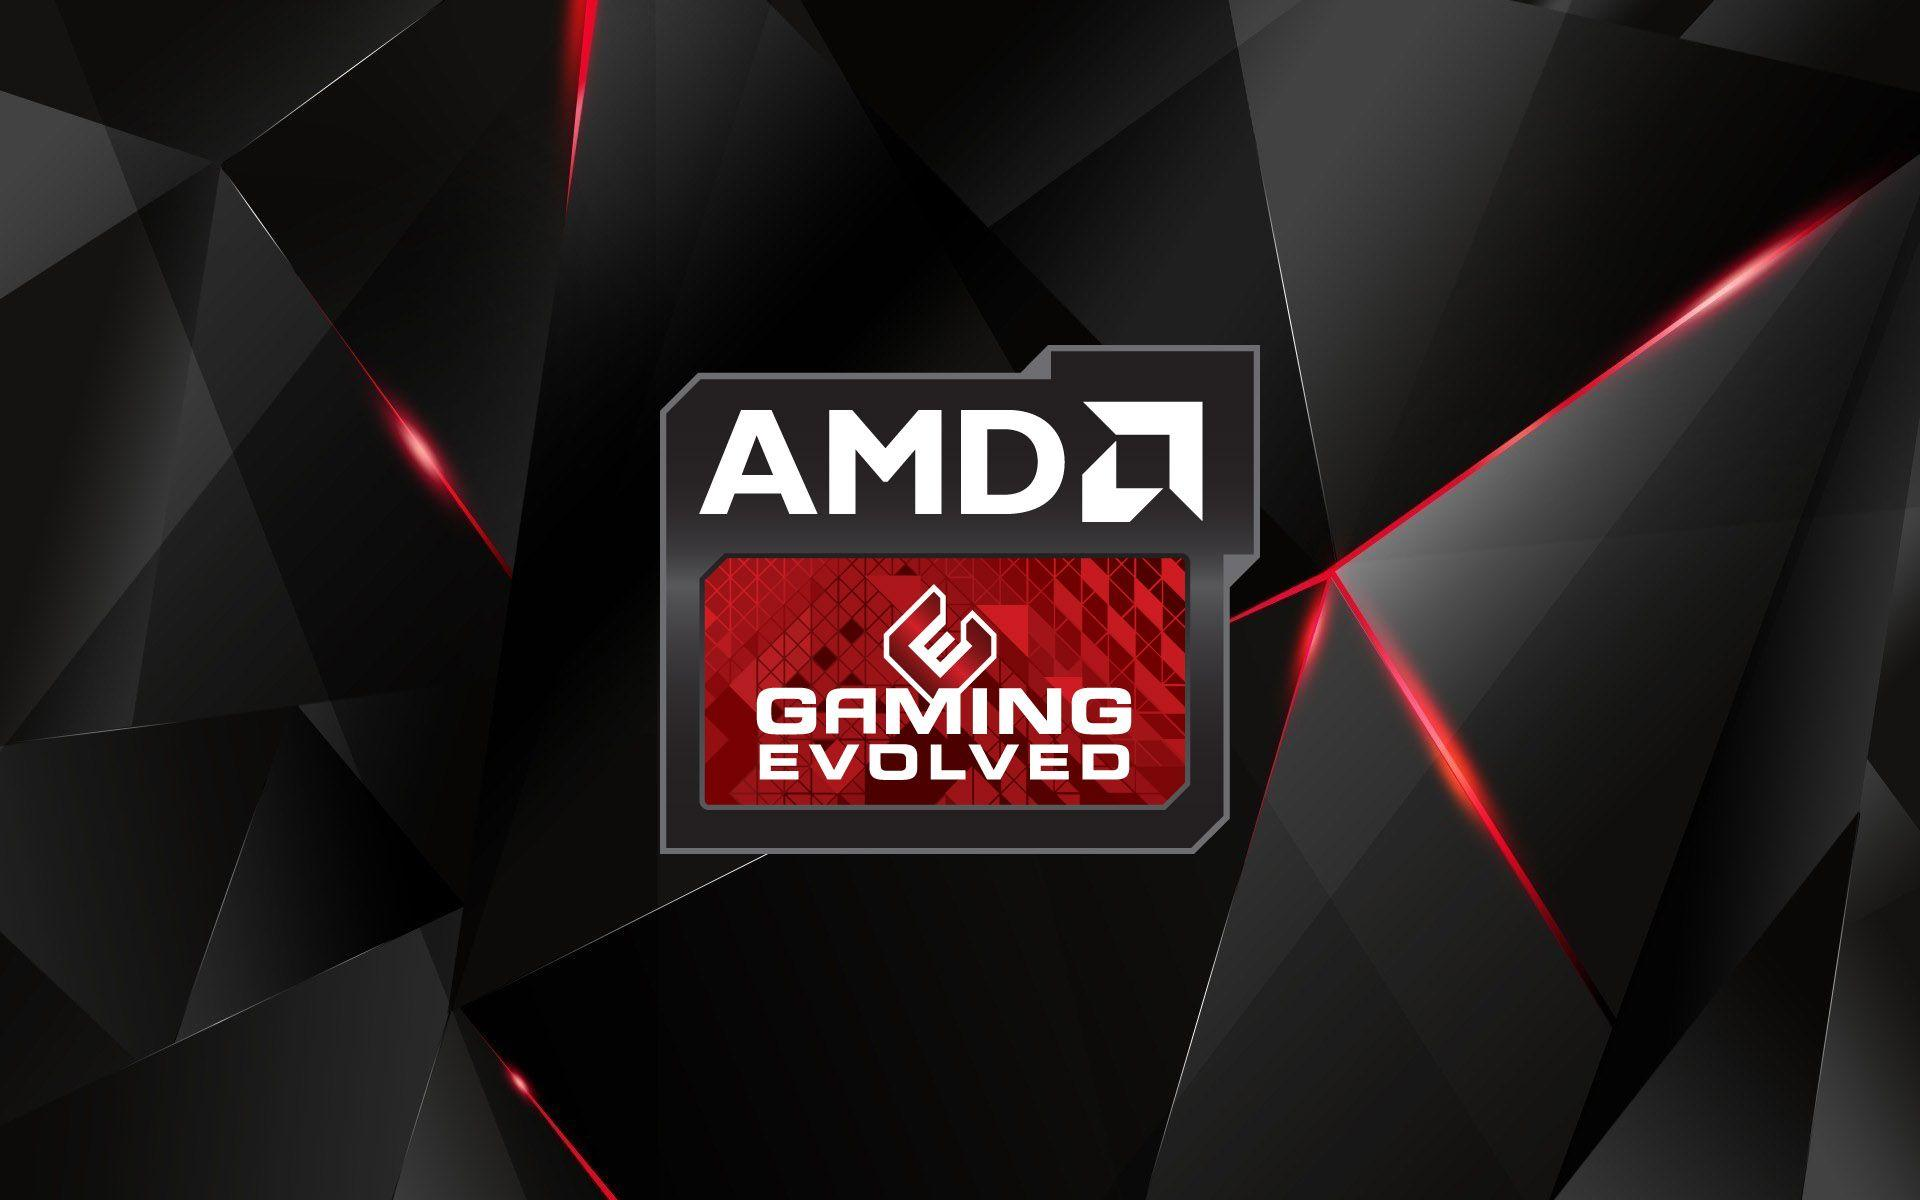 amd radeon wallpapers hd - photo #4